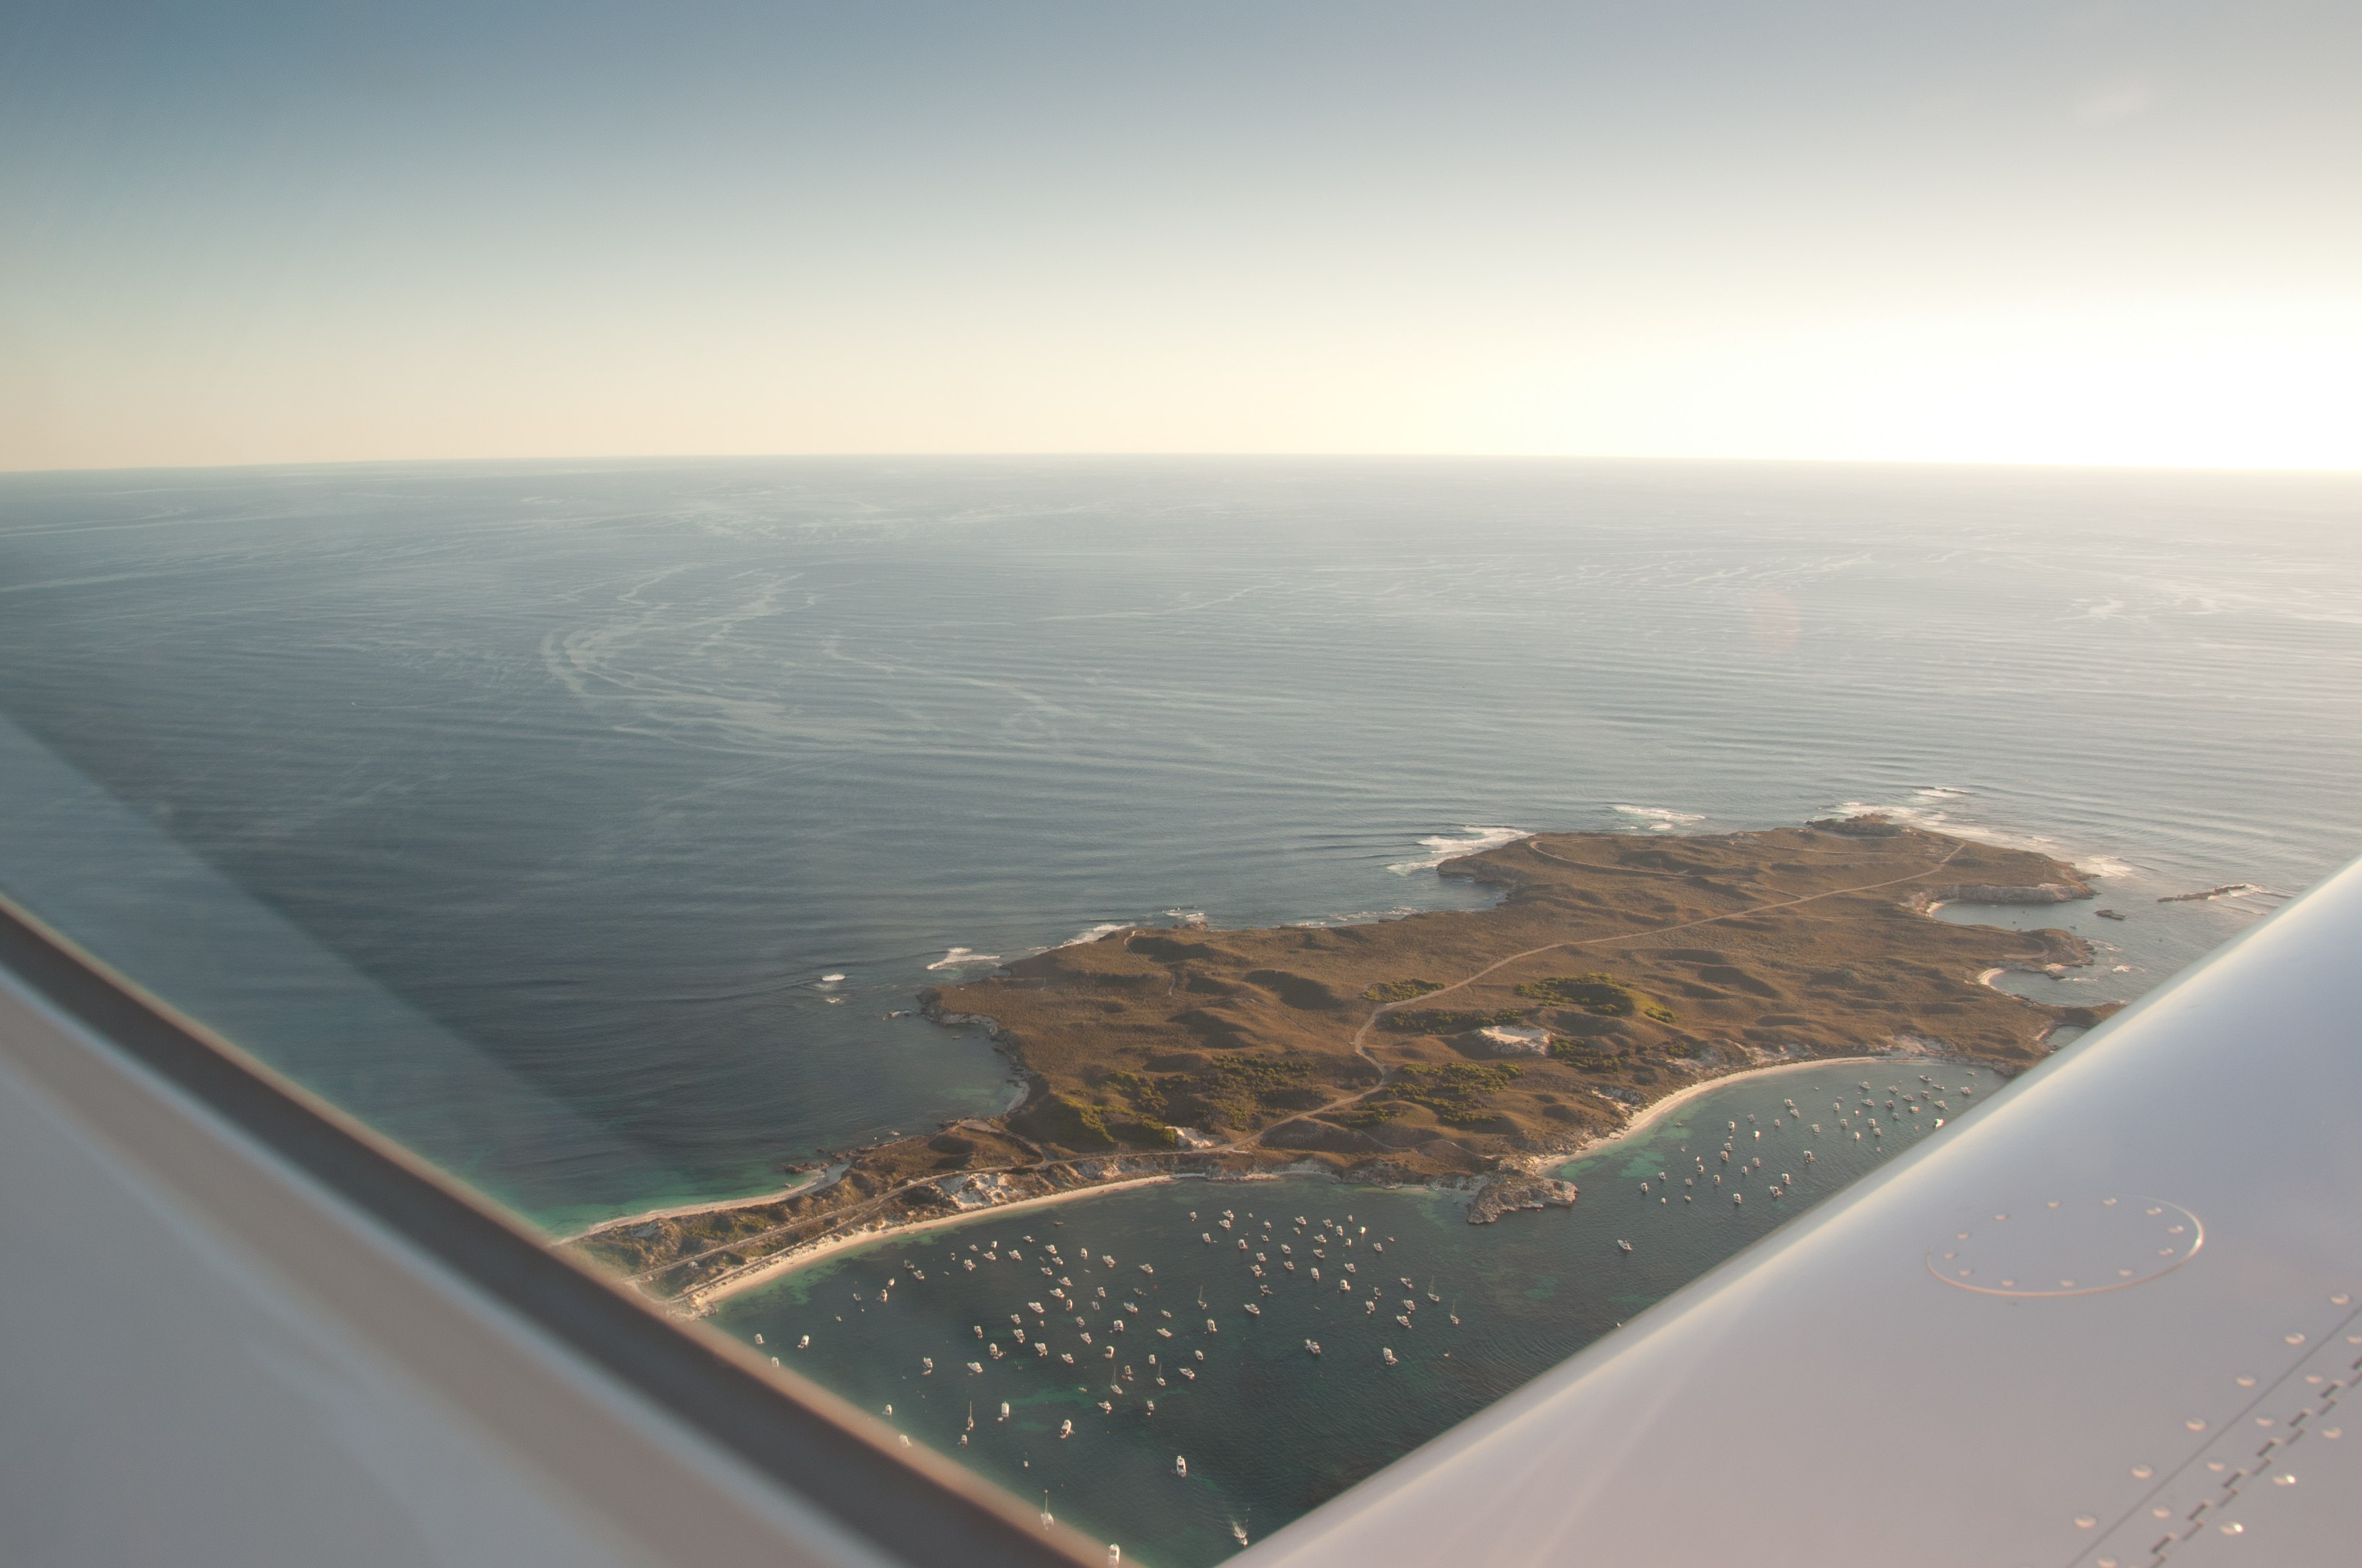 VH-EZT over rottnest island twilight